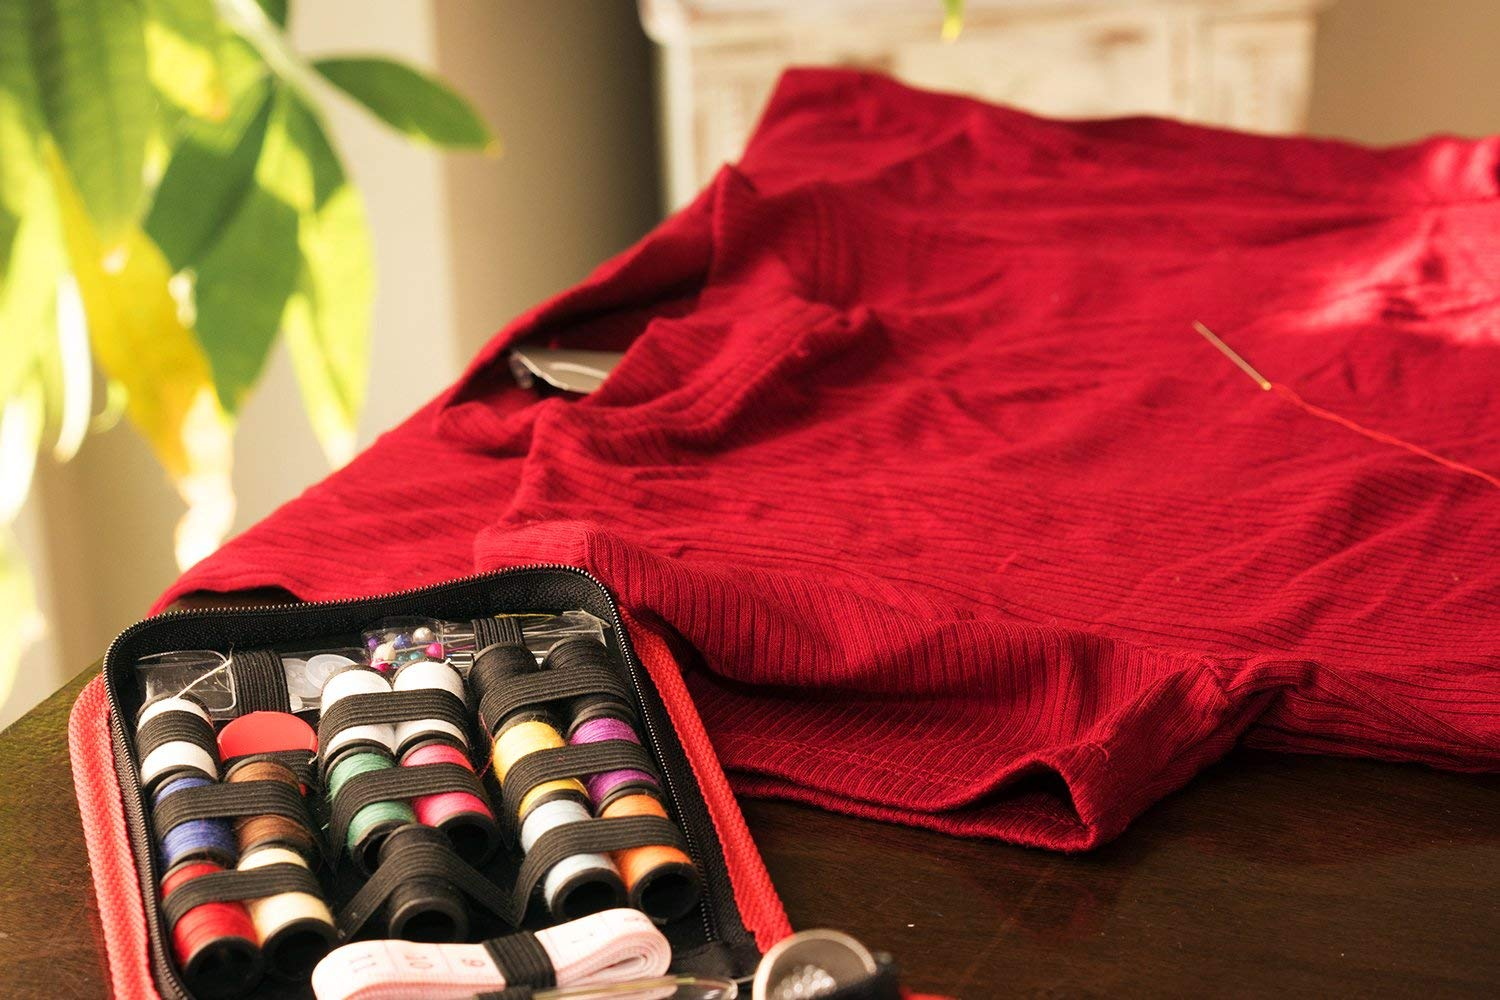 The top 15 things to take to college – Sewing kit